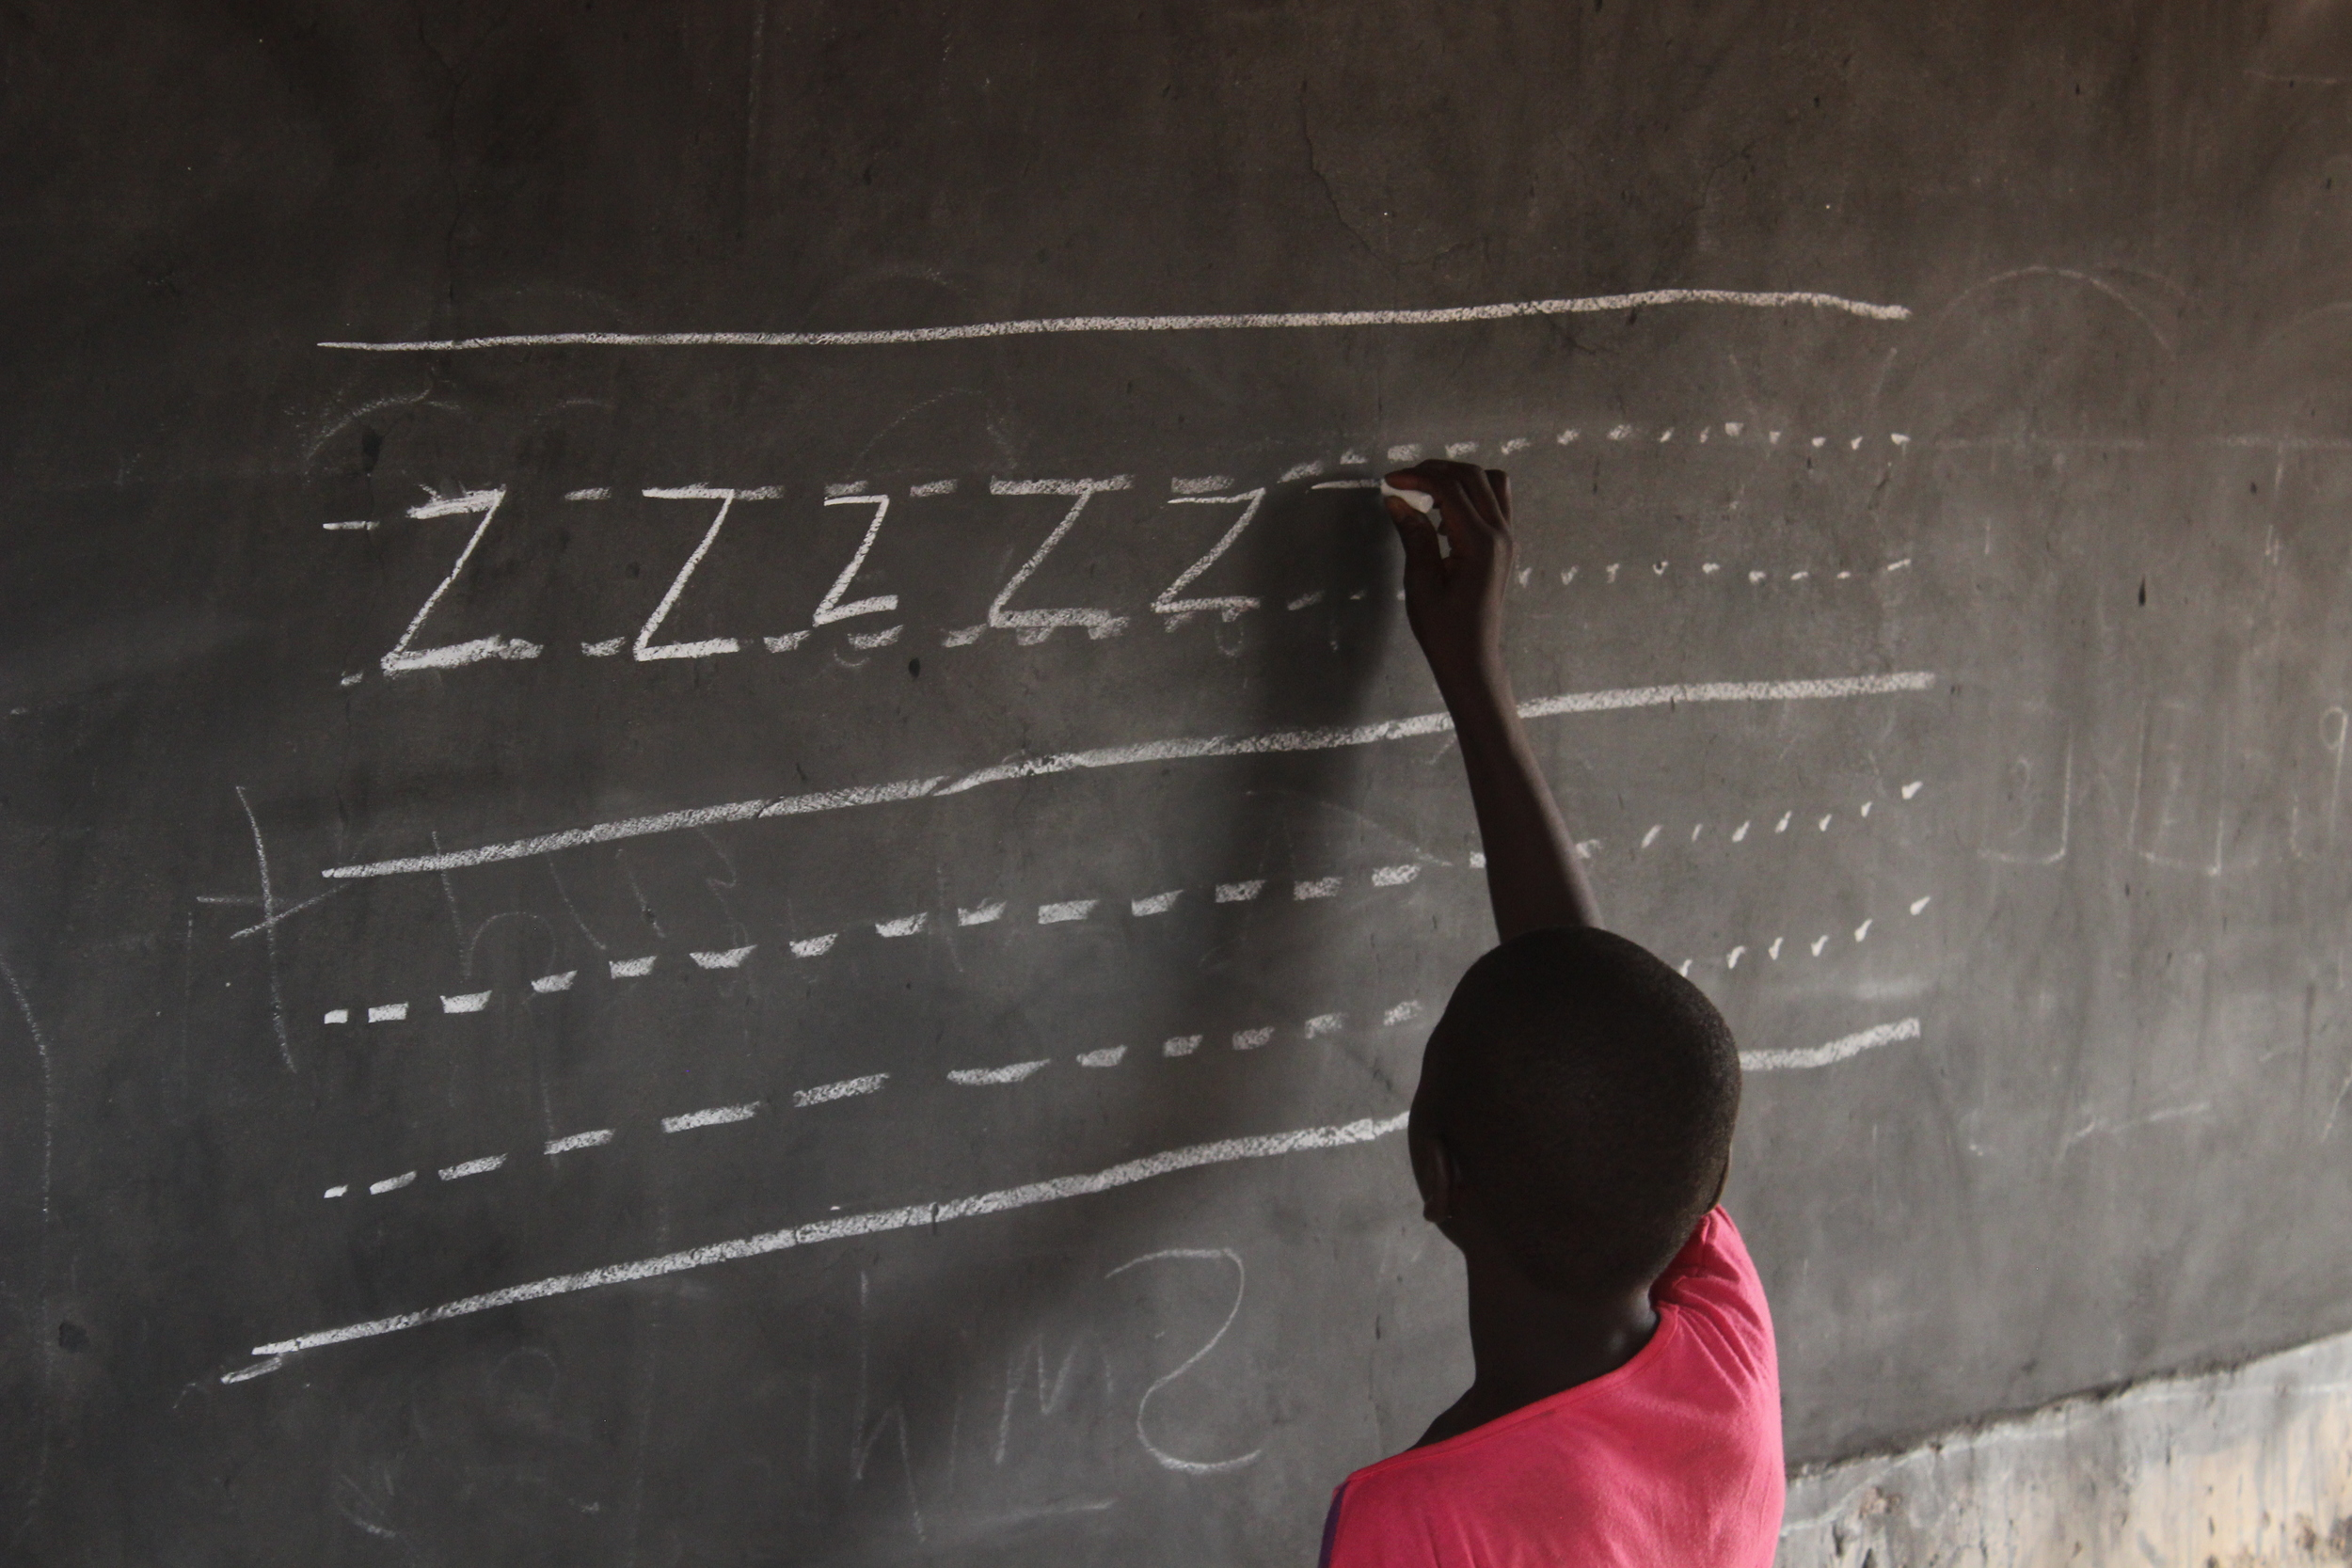 An out of school Ghanaian girl attends a Complementary Basic Education program that aims to provide accelerated literacy and numeracy. The ultimate goal is for her to transition into formal schooling after completing the 9-month program. Credit: Brendan Rigby